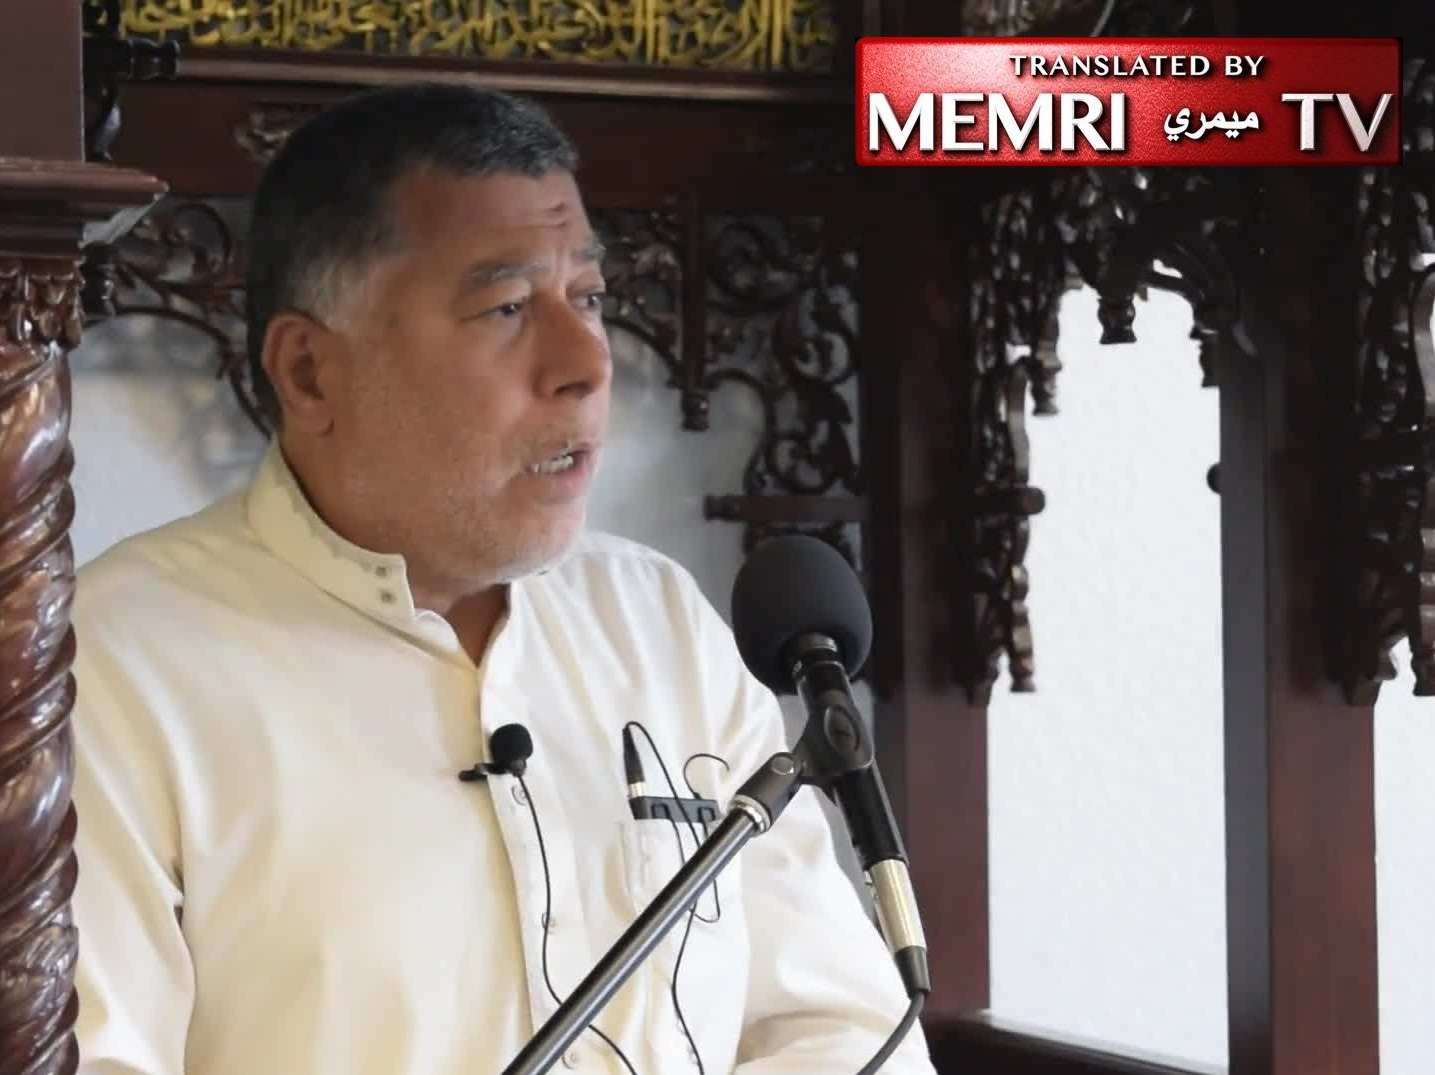 Florida Friday Sermon - Imam Hasan Sabri: The Only Way to Liberate Palestine, Jerusalem, and the Al-Aqsa Mosque Is the Way of Saladin and Omar Ibn Al-Khattab